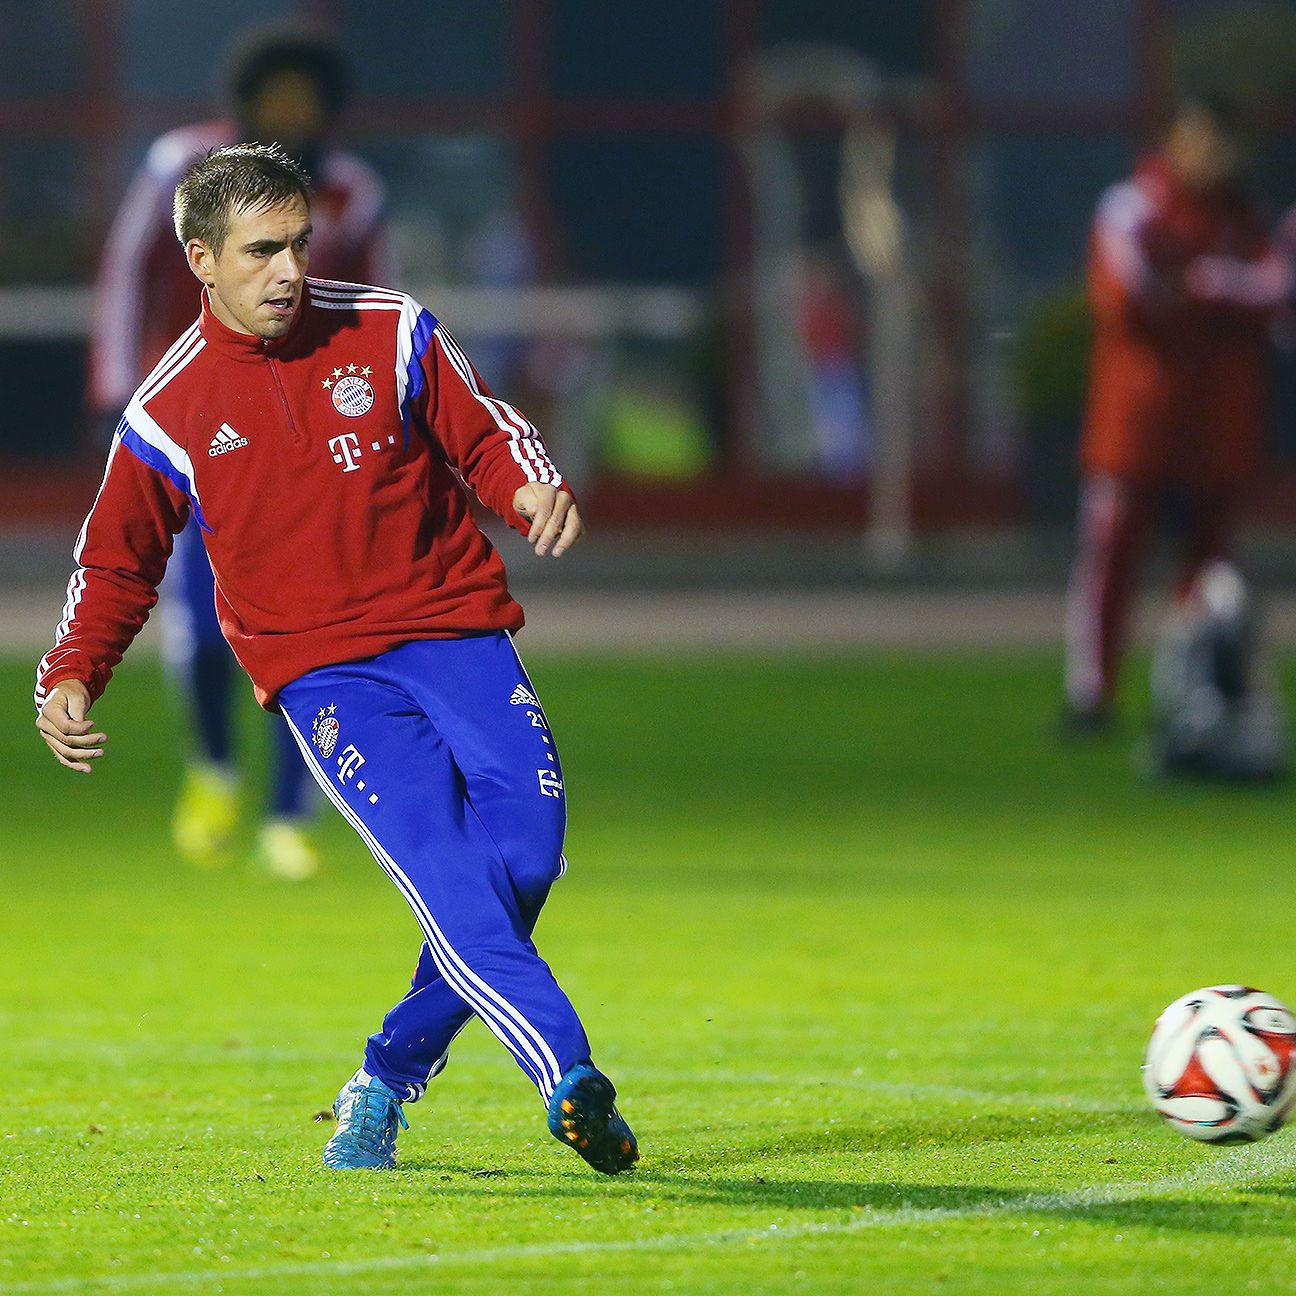 Bayern Munich will be without the services of Philipp Lahm for at least three months.